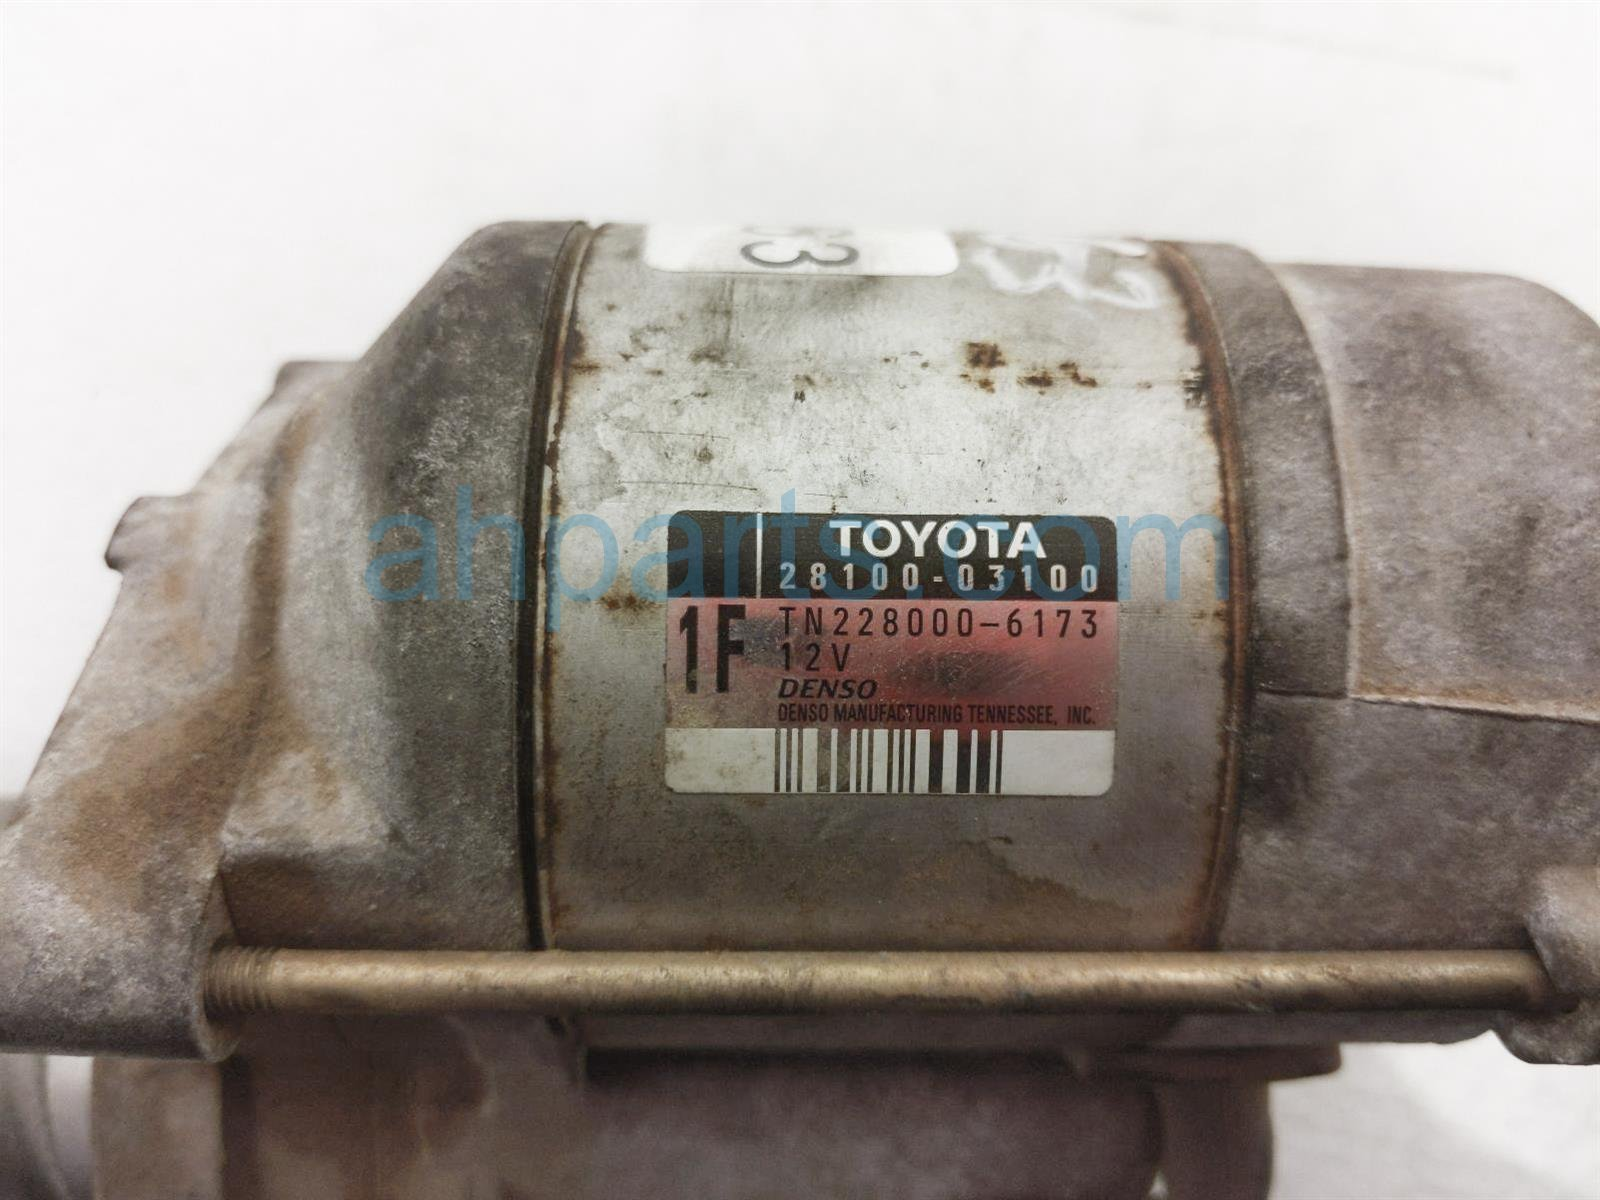 2001 Toyota Camry Starter Motor 28100 74260 84 Replacement